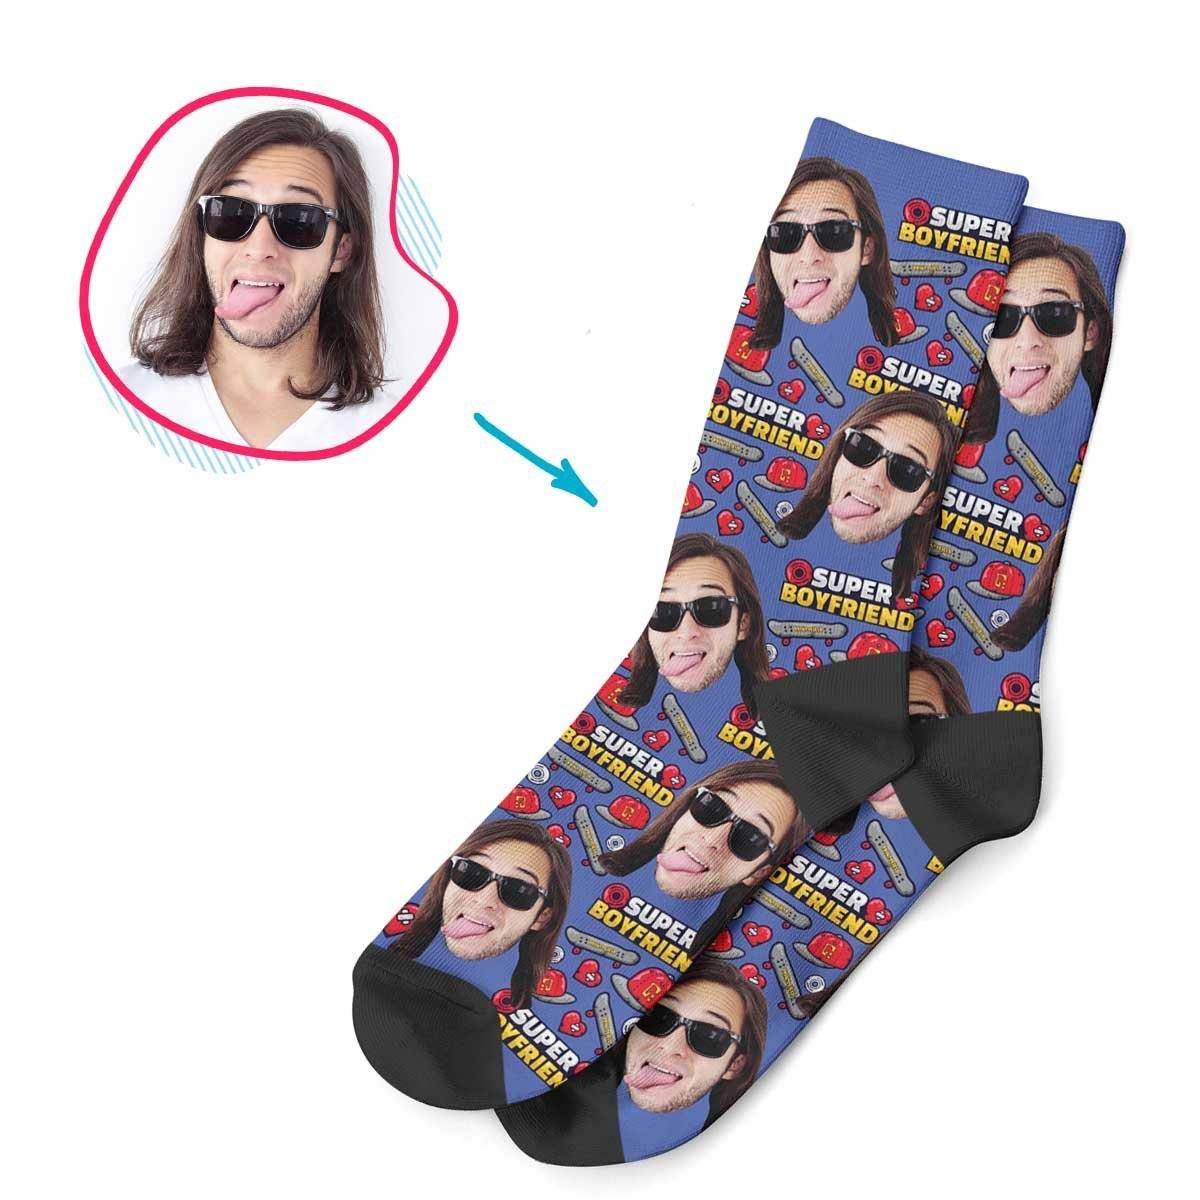 Darkblue Boyfriend personalized socks with photo of face printed on them